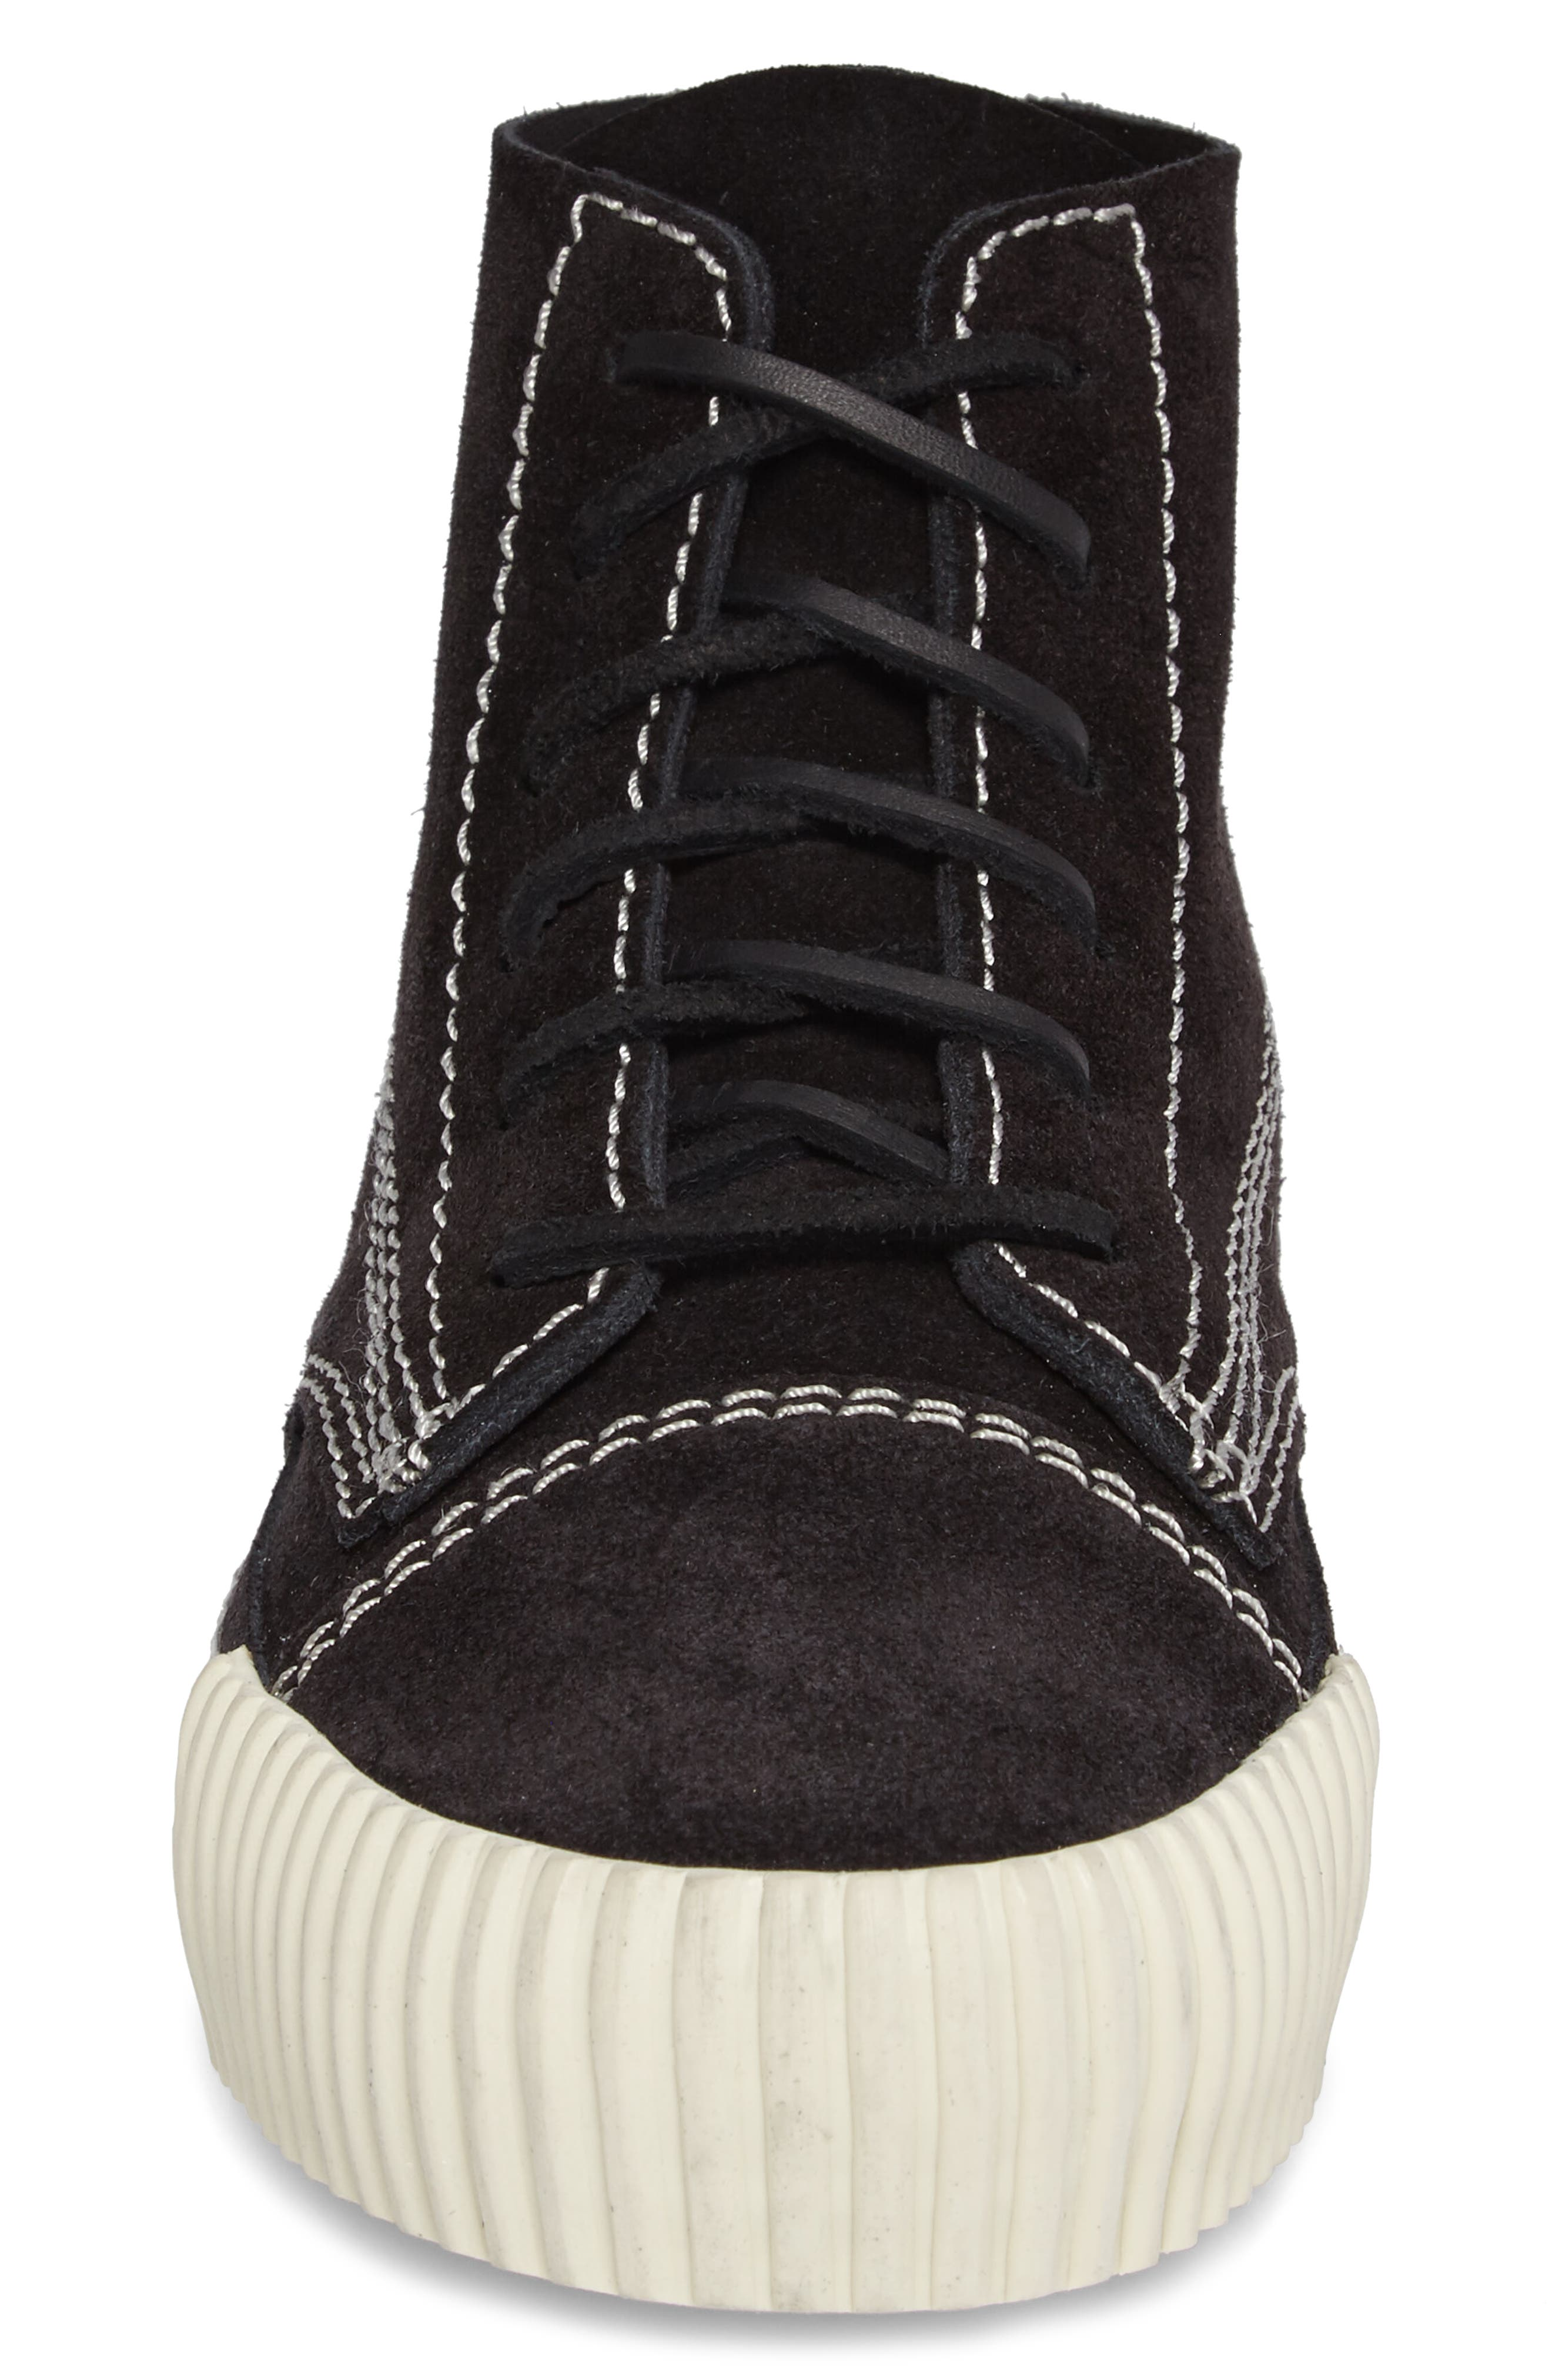 'Perry' Suede High Top Sneaker,                             Alternate thumbnail 4, color,                             001